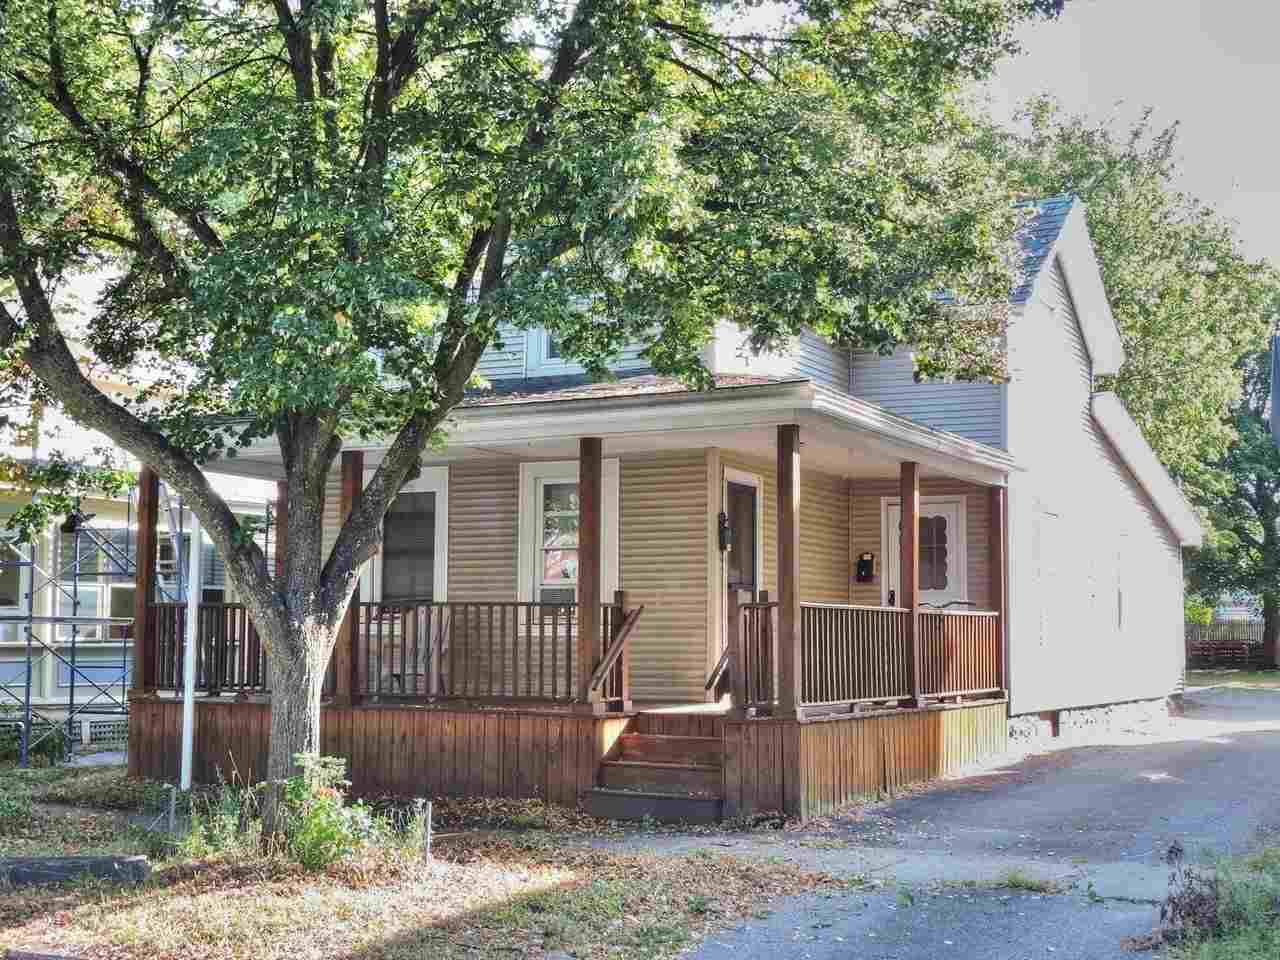 Great duplex with solid rental history on a city lot in the heart of Burlington! Well maintained property includes a large, three bedroom unit on the first floor with cheerful, spacious eat-in kitchen, living room with lots of light and a full bath. Another one bedroom unit is on the second level and includes a large kitchen, a reading nook and full bath. A full basement offers extra space for storage and a nice wrap-around deck on the front is a great entertaining spot in the summer! A deep back yard offers a secluded spot to relax and there's a shared paved driveway for off-street parking. Many new appliances and upgrades in the last few years. This is a great opportunity for investors or to owner-occupy with a sought-after location, close to Downtown shops, restaurants and services. Don't wait on this one!